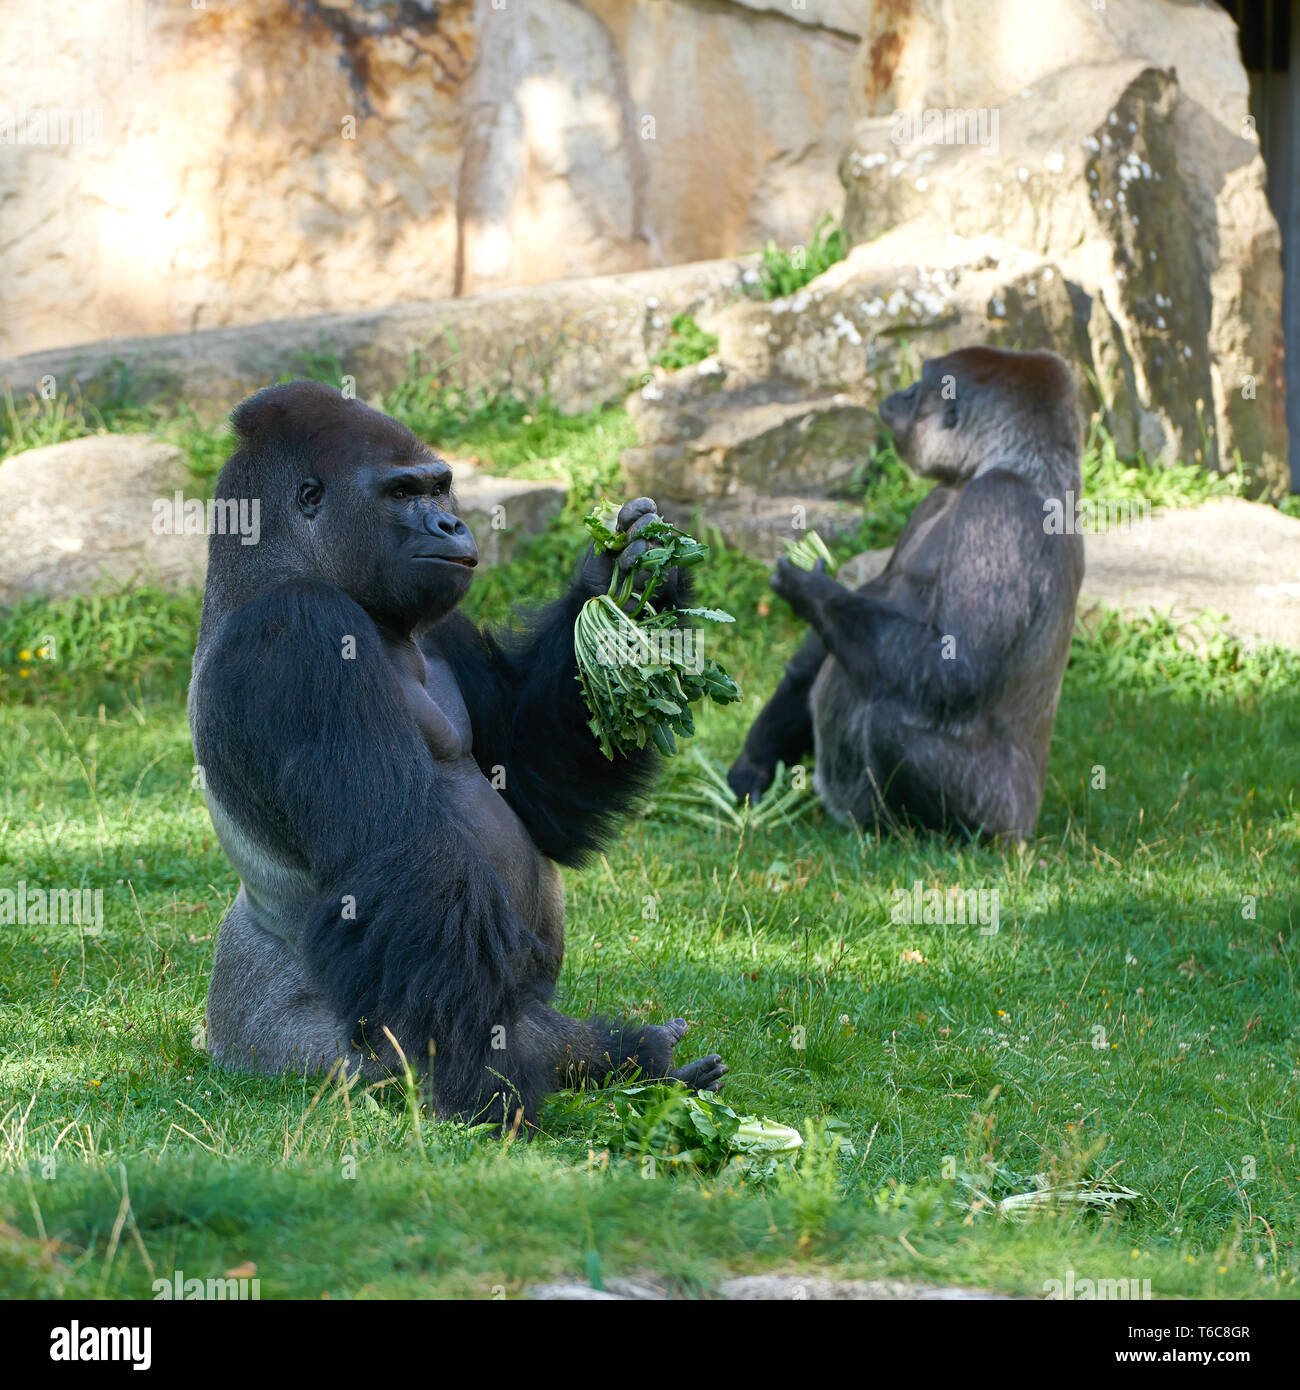 Gorillas during feeding in a zoo - Stock Image